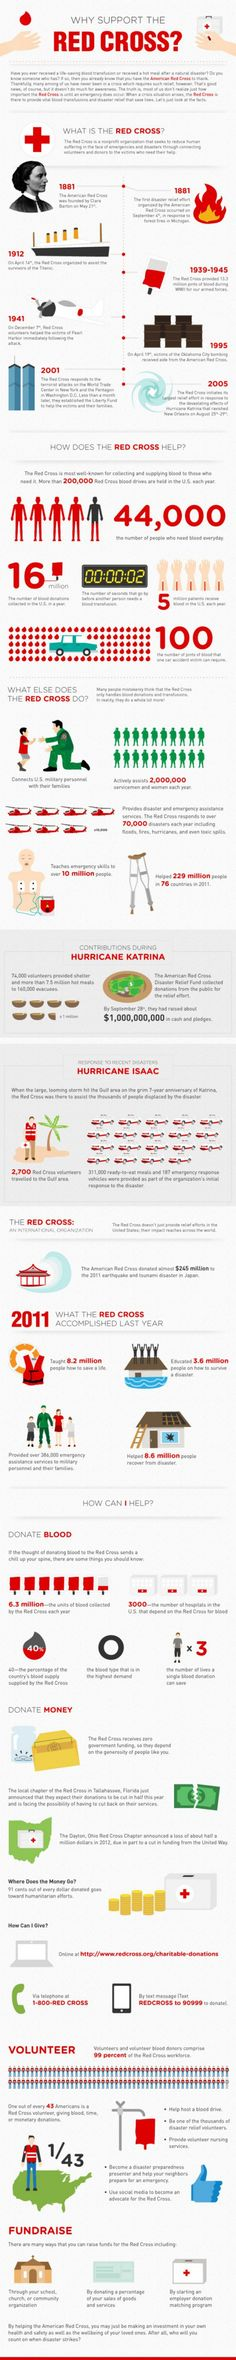 Why Support the Red Cross? [Infographic] #travel #redcross